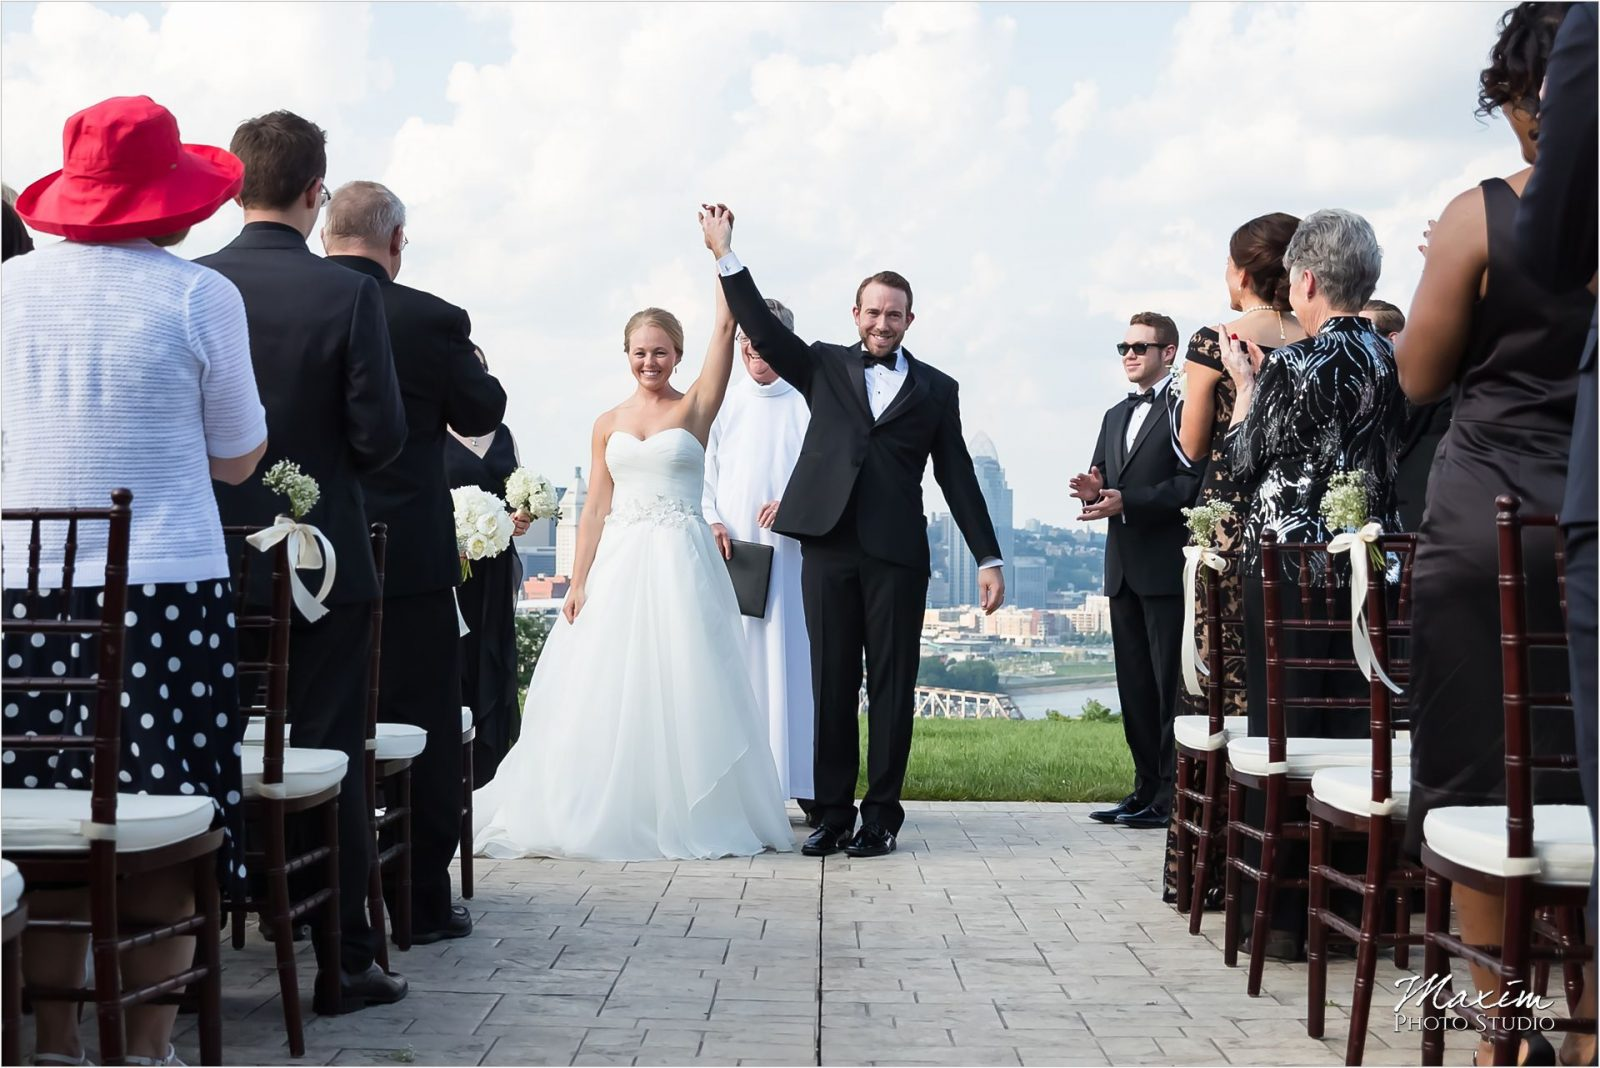 Drees Pavilion Covington Kentucky Wedding Ceremony